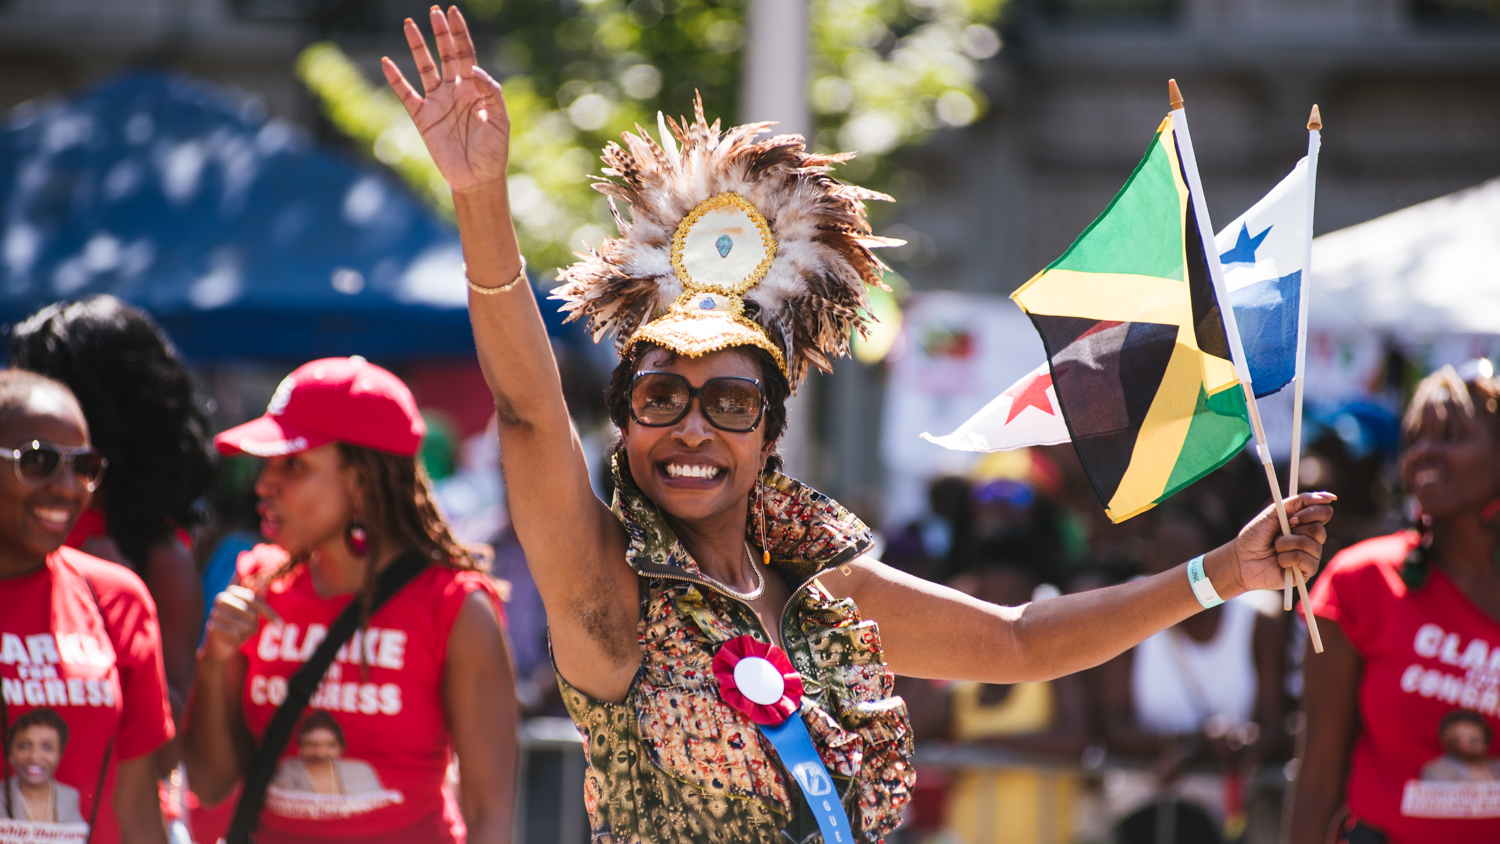 See festive photos from J'ouvert and the West Indian Day Parade 2015